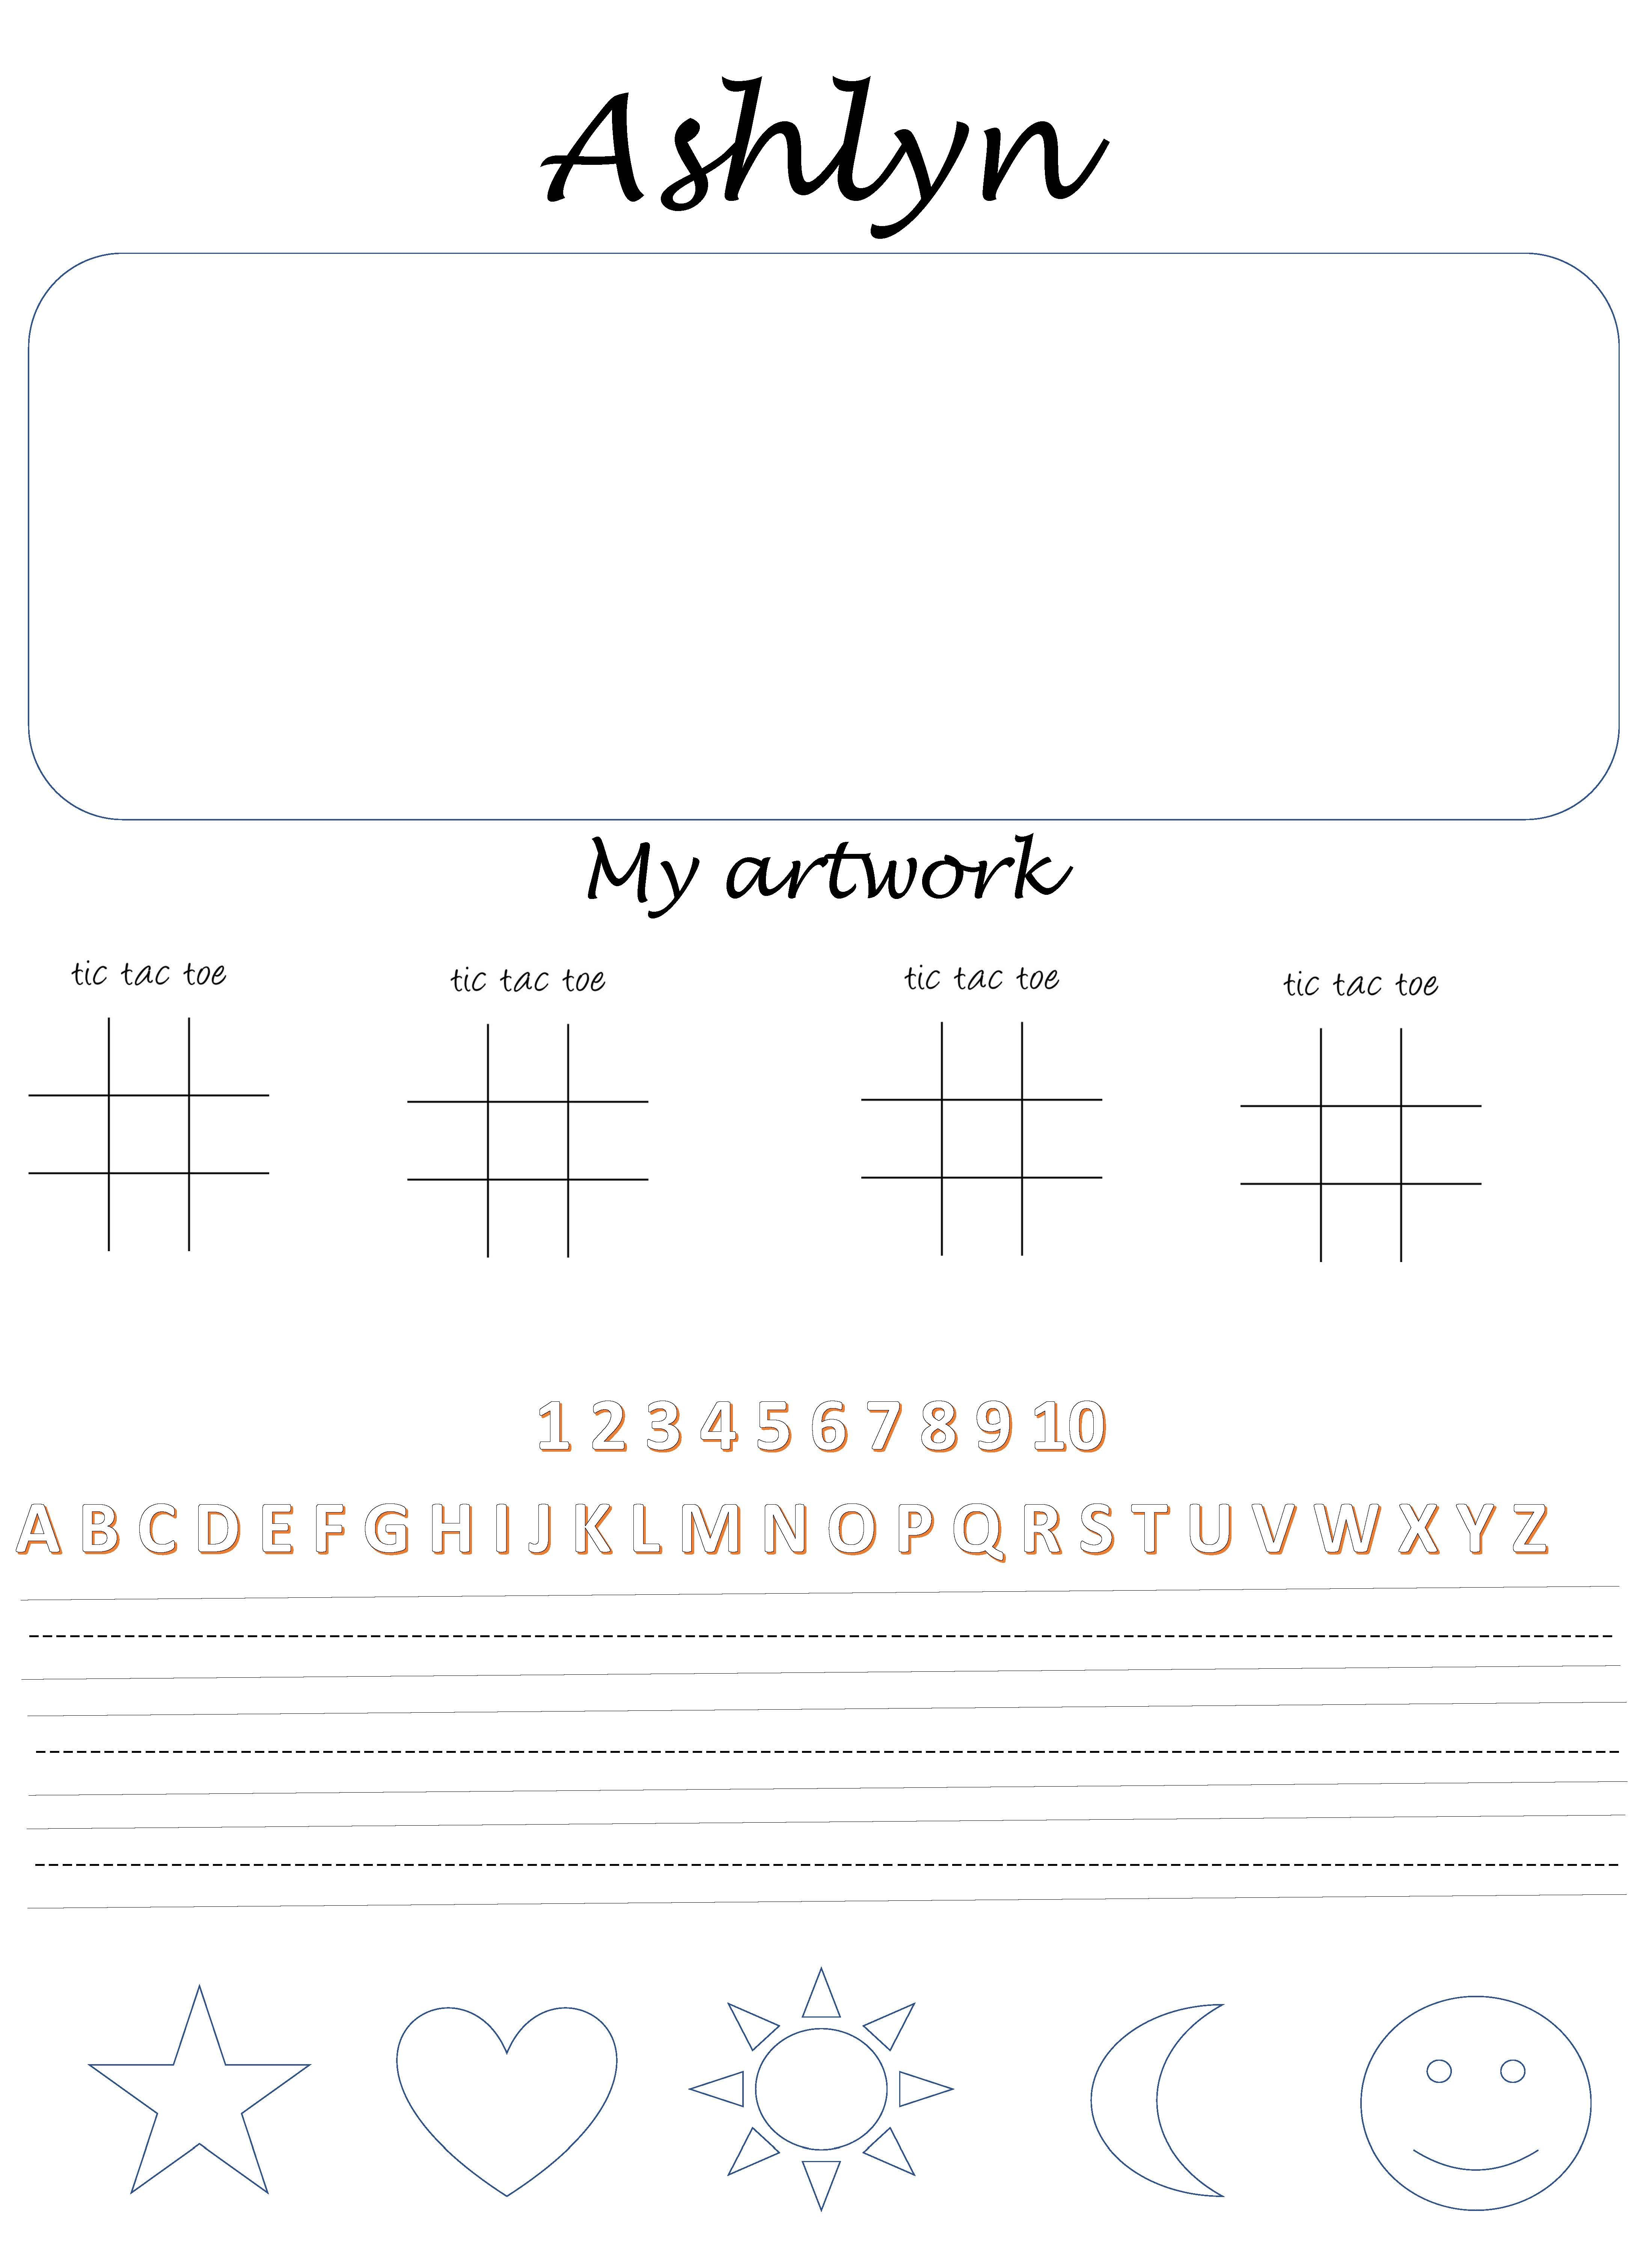 Custom Printed Easels Pads With Your Child S Name Size 22 X 30 40 Sheets Of Paper Per Pad